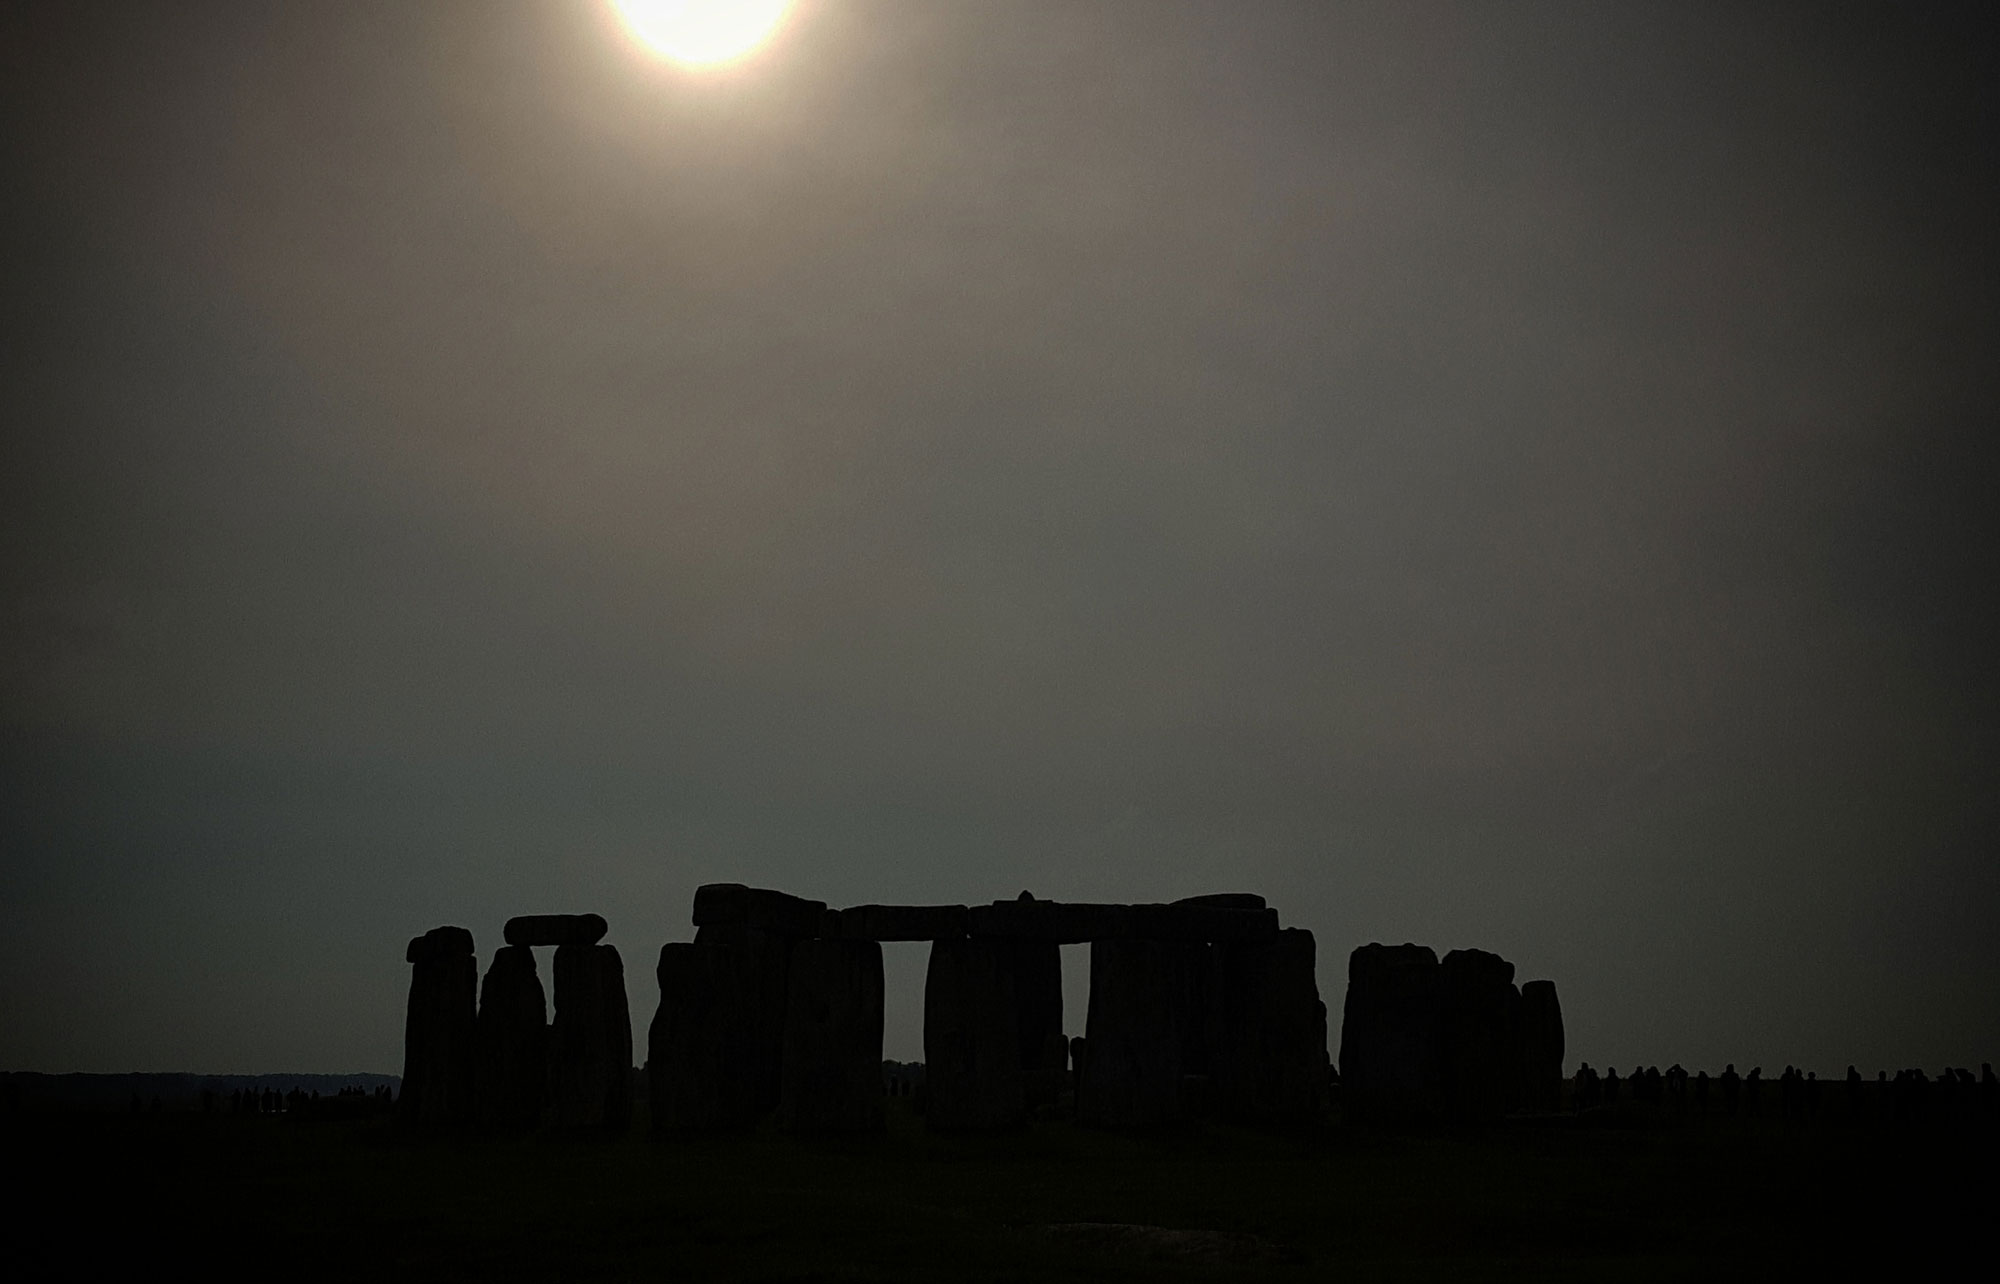 Stonehenge Neolithic Site in Wiltshire